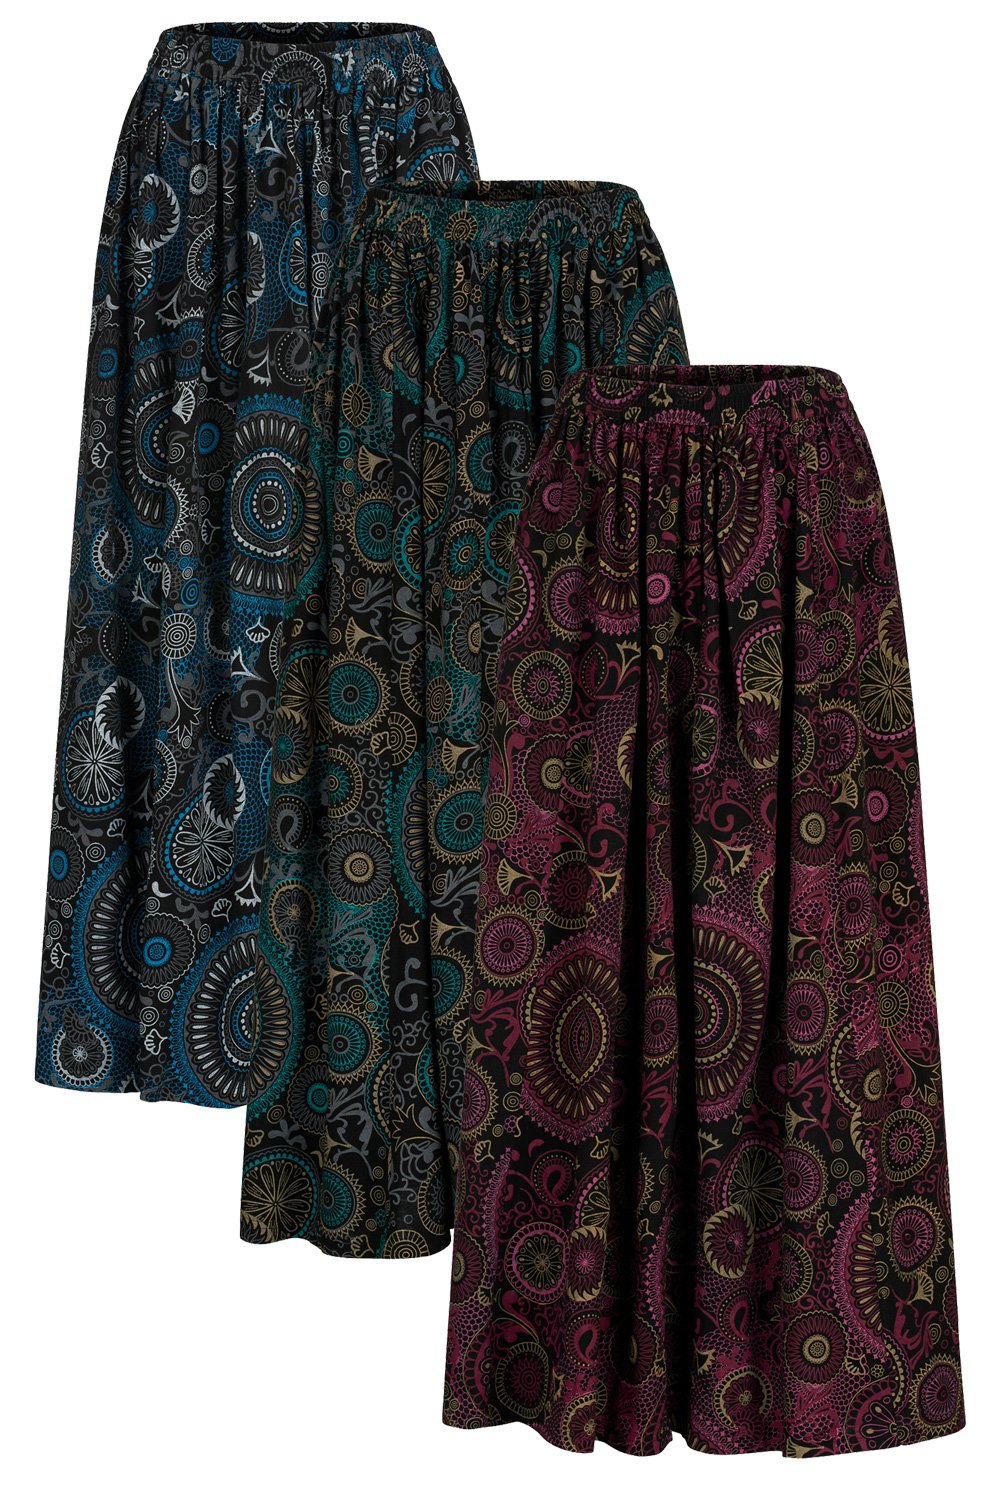 Mandala extra long full skirt with pockets